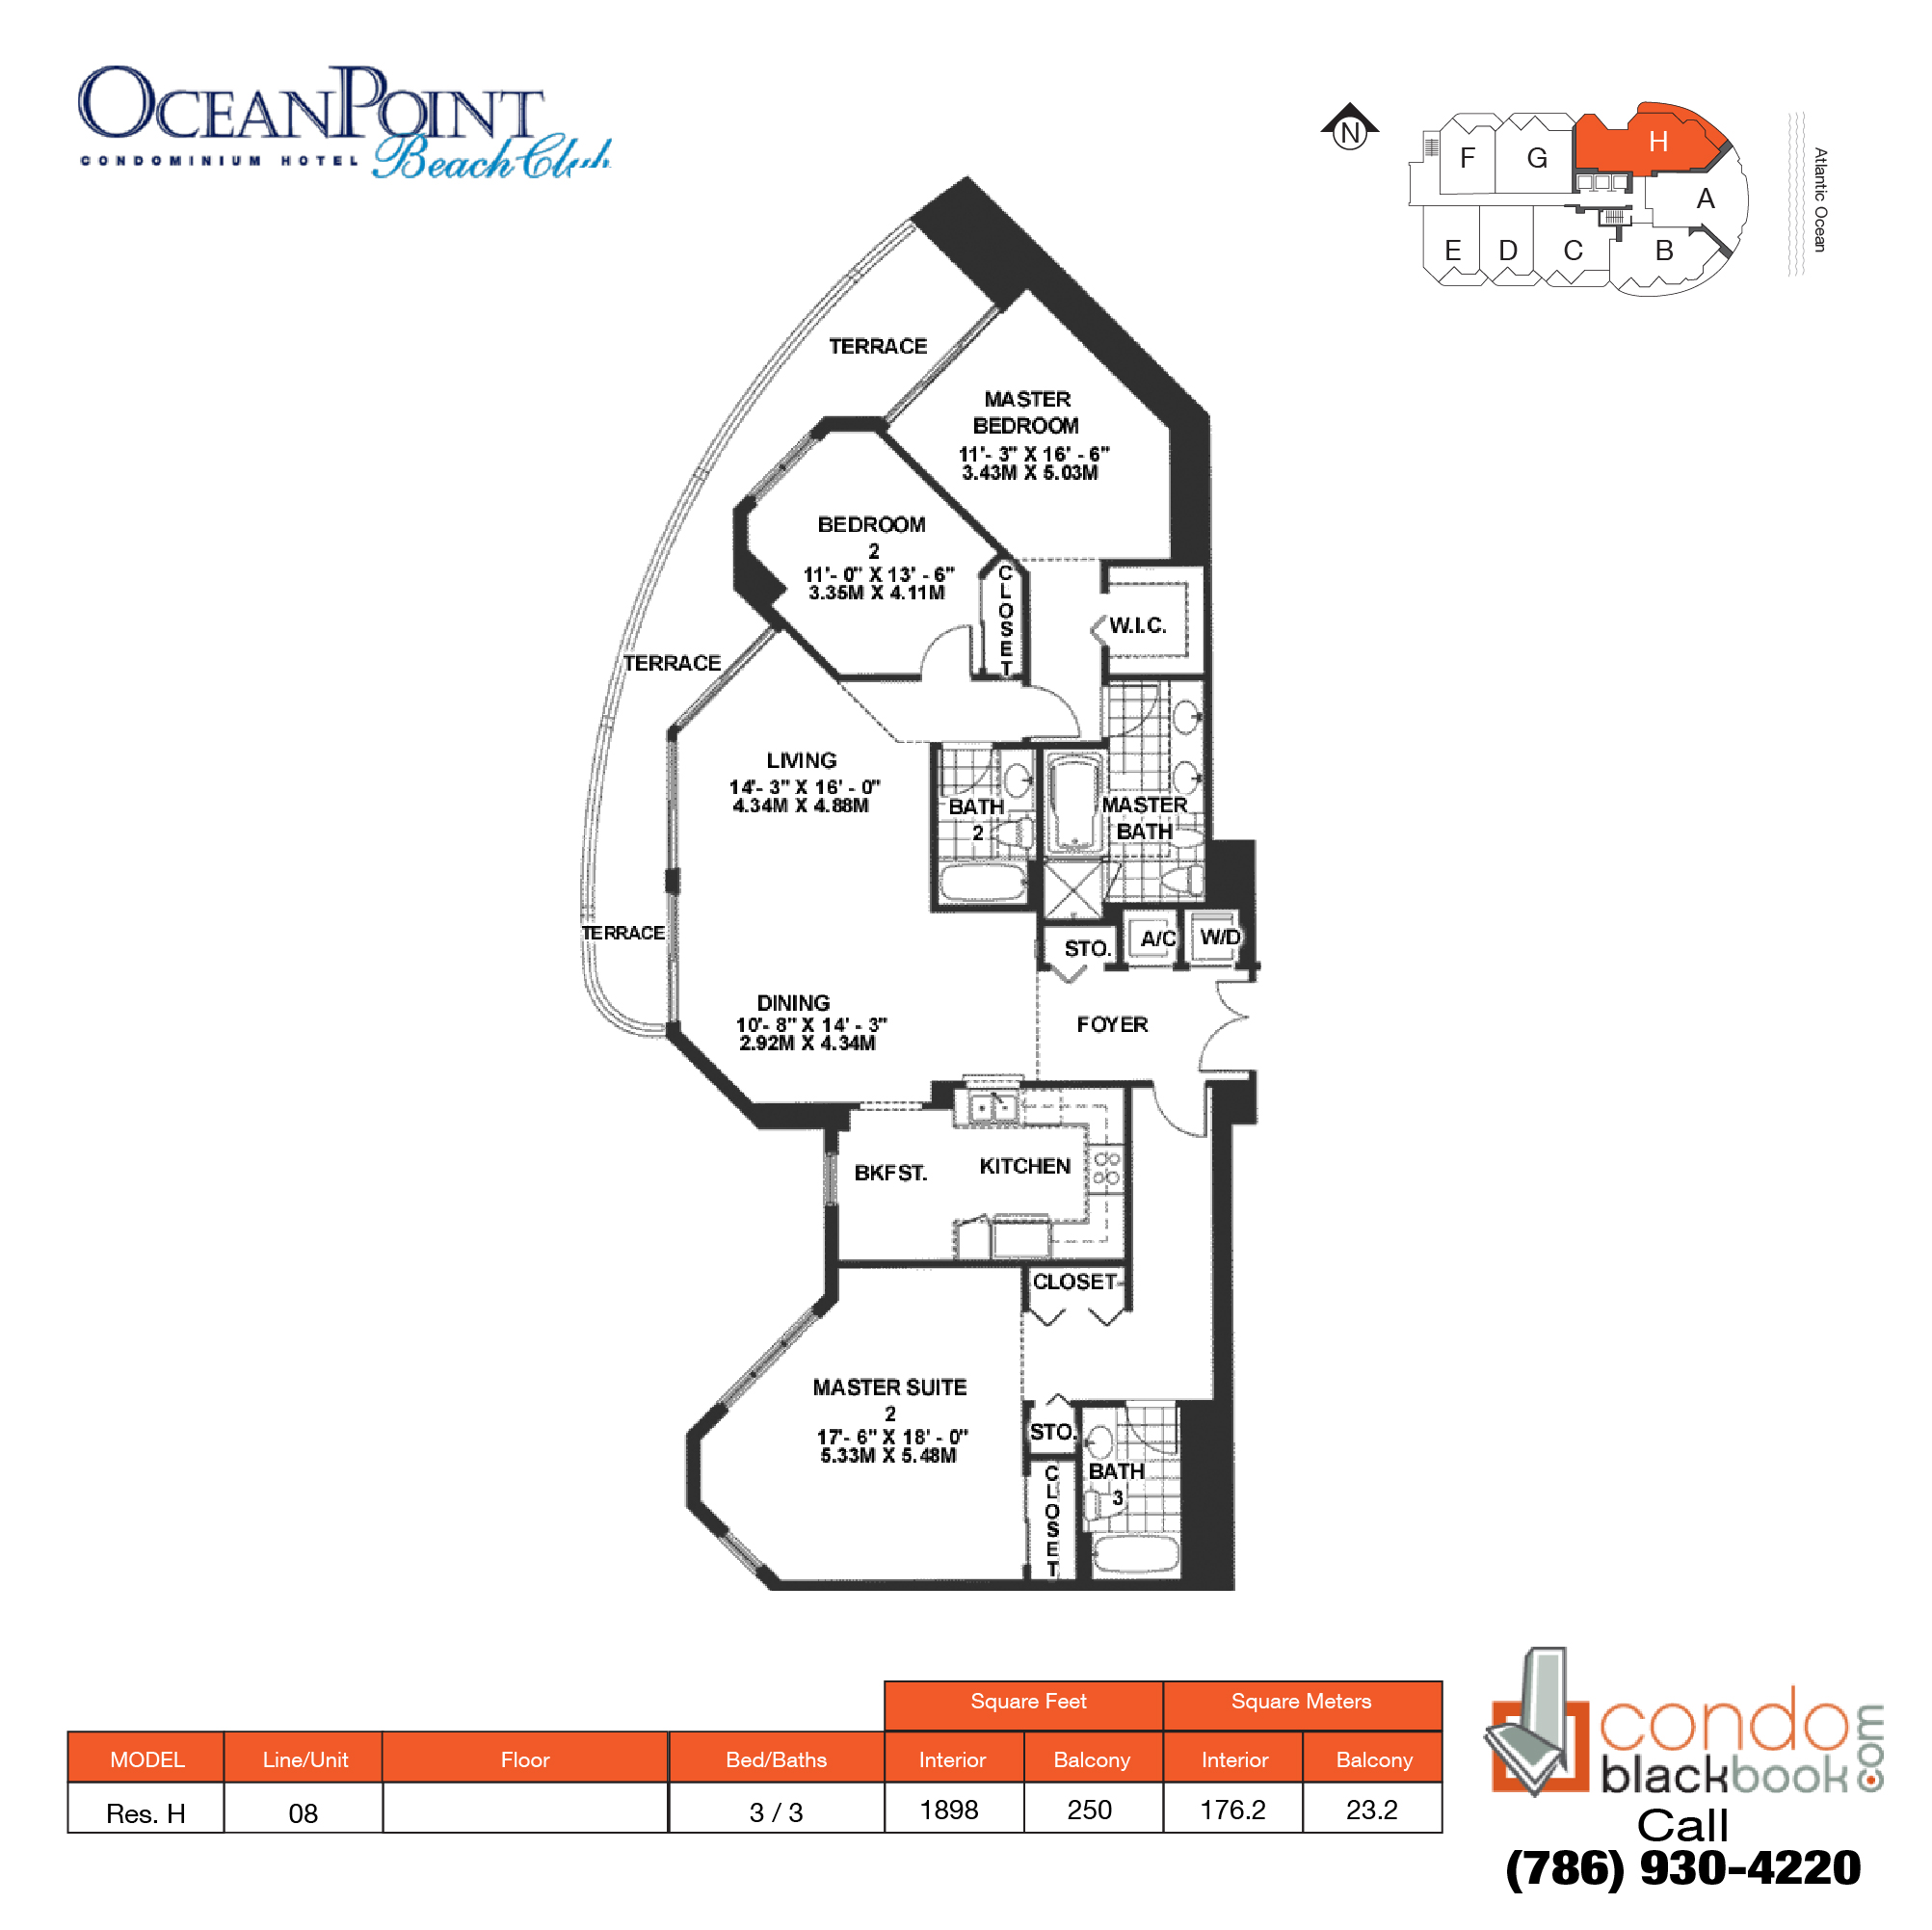 Floor plan for Ocean Point Beach Club Sunny Isles Beach, model Res.  H, line 08, 2 / 2 bedrooms, 1898 sq ft